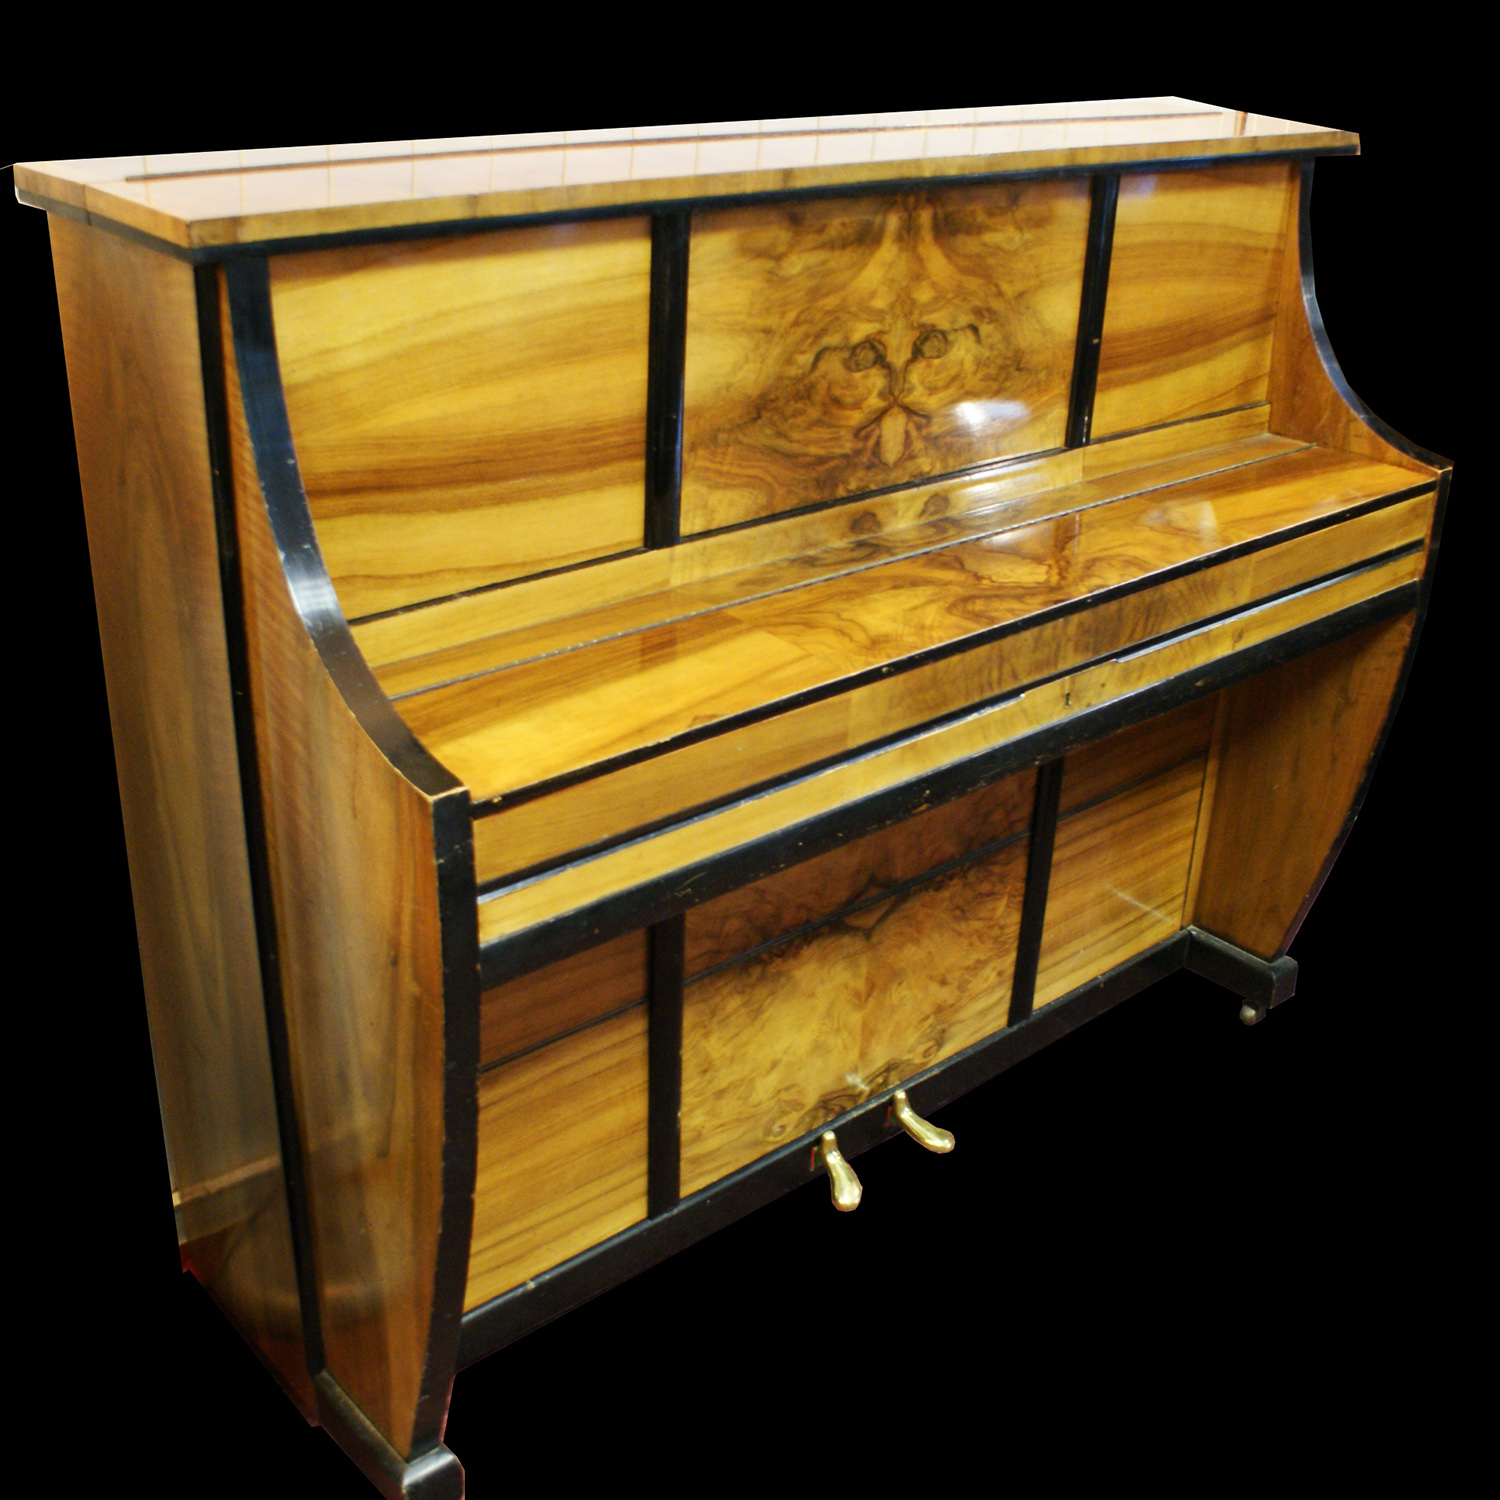 Waldberg Art Deco Piano - Crazy Cat